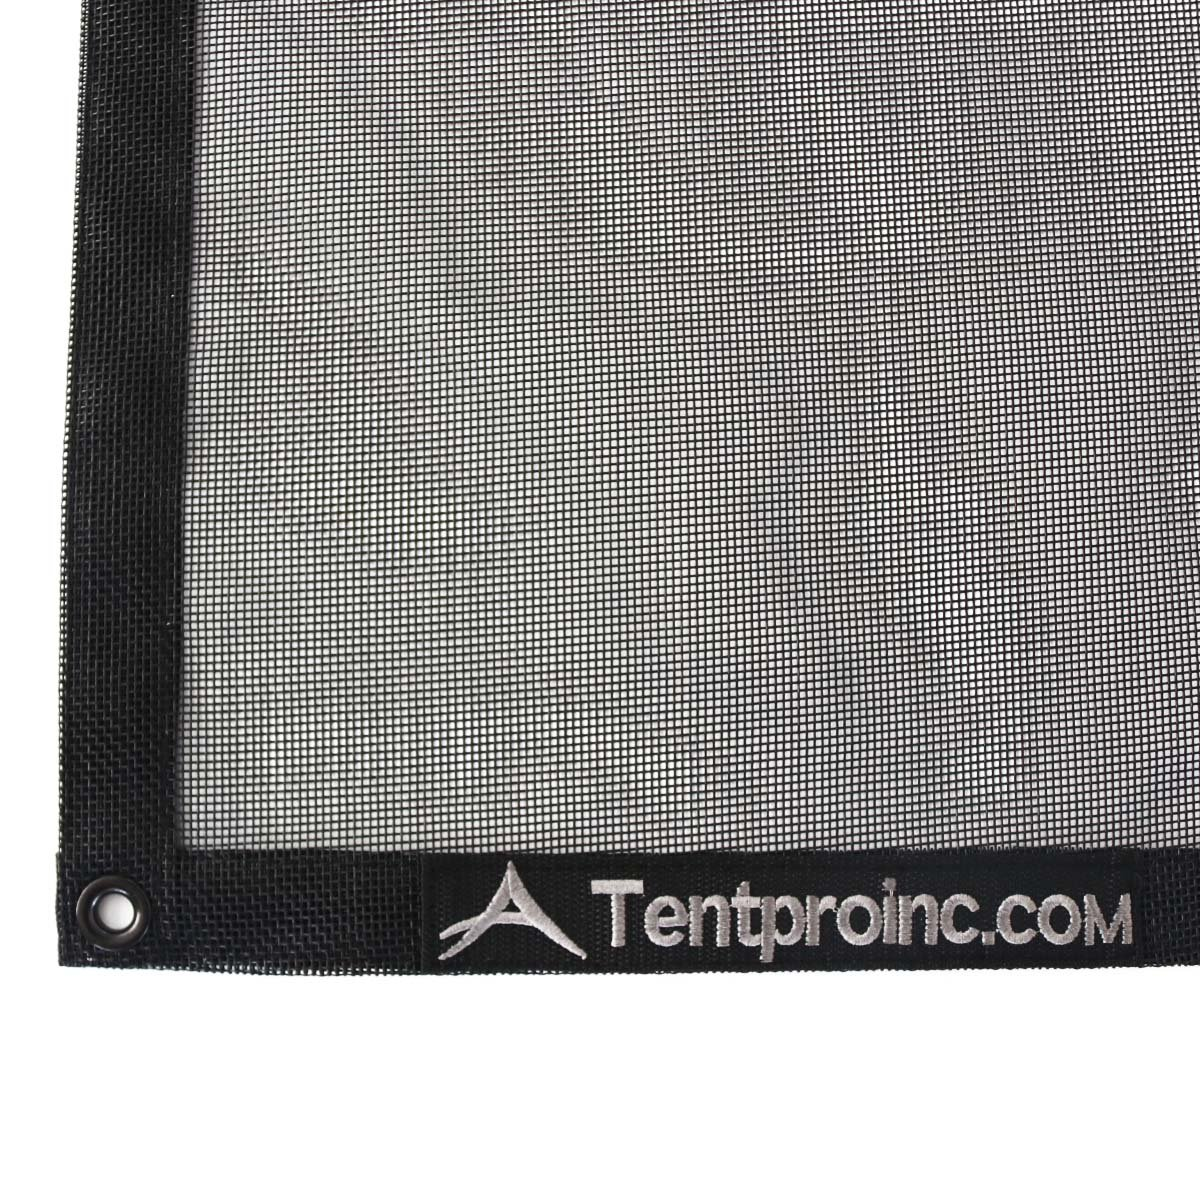 Tentproinc Truck Mesh Tarp 9' X 12' Black Heavy Duty Cover Reinforced Double Needle Stitch Webbing Ripping and Tearing Stop, No Rust Thicker Brass Grommets - 3 Years Limited Warranty by Tentproinc (Image #5)